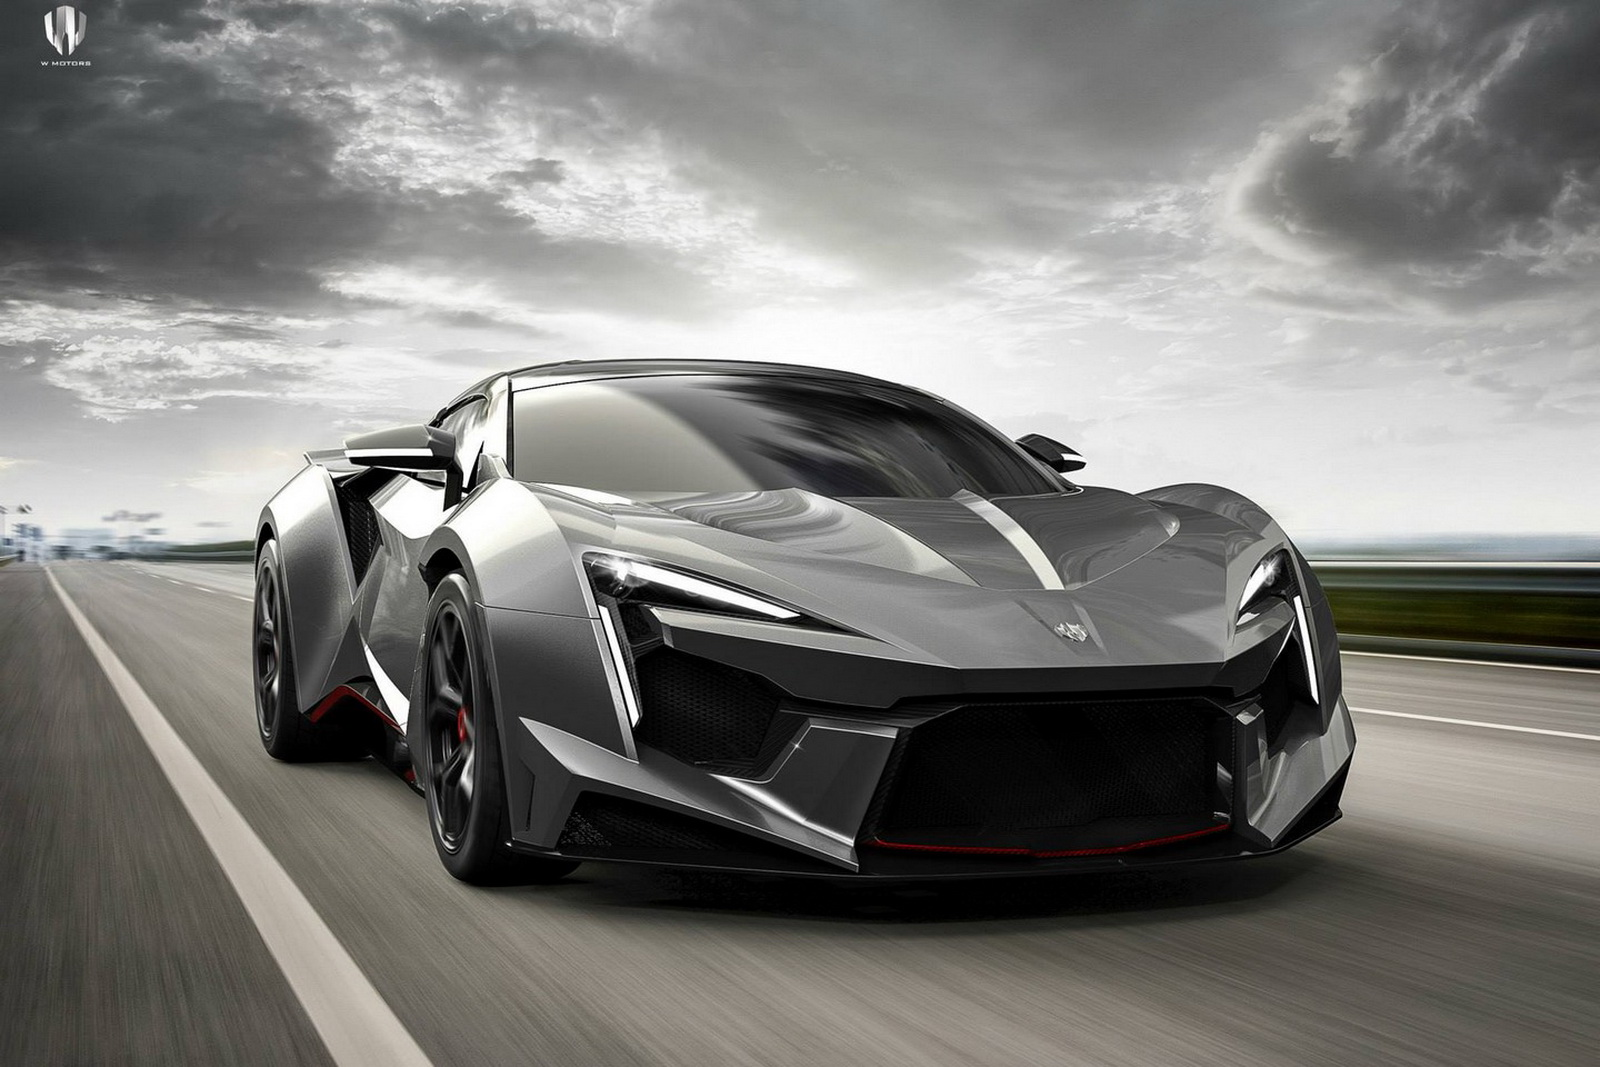 Fighter Jet-Inspired Fenyr SuperSport Has 900HP Twin-Turbo Engine